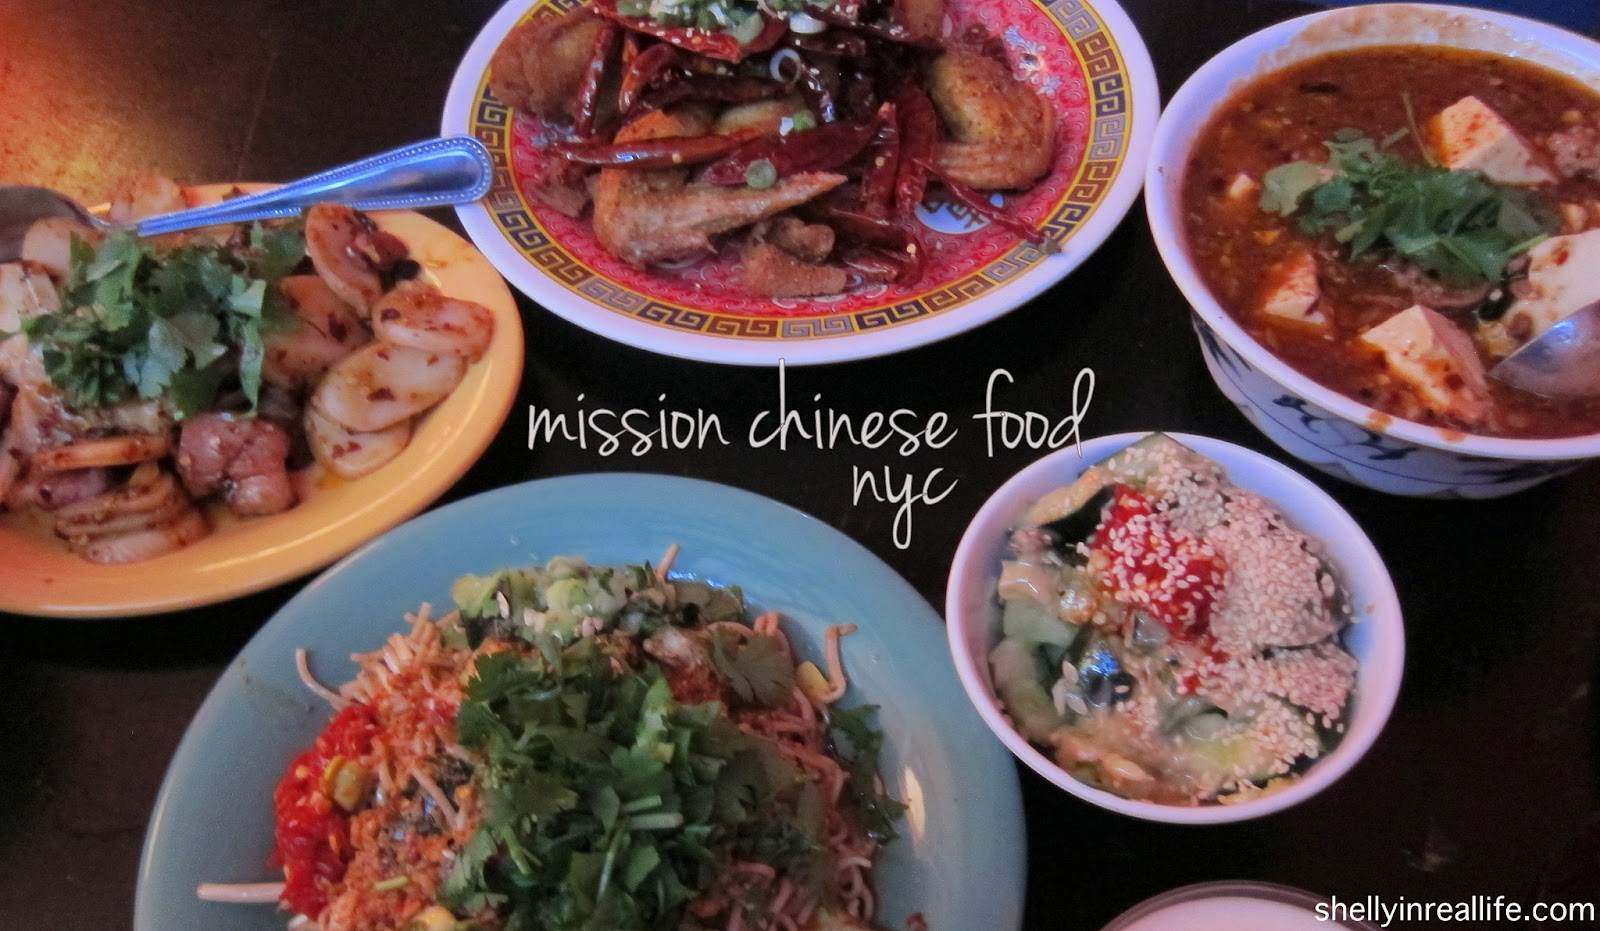 Mission Chinese Food Opentable